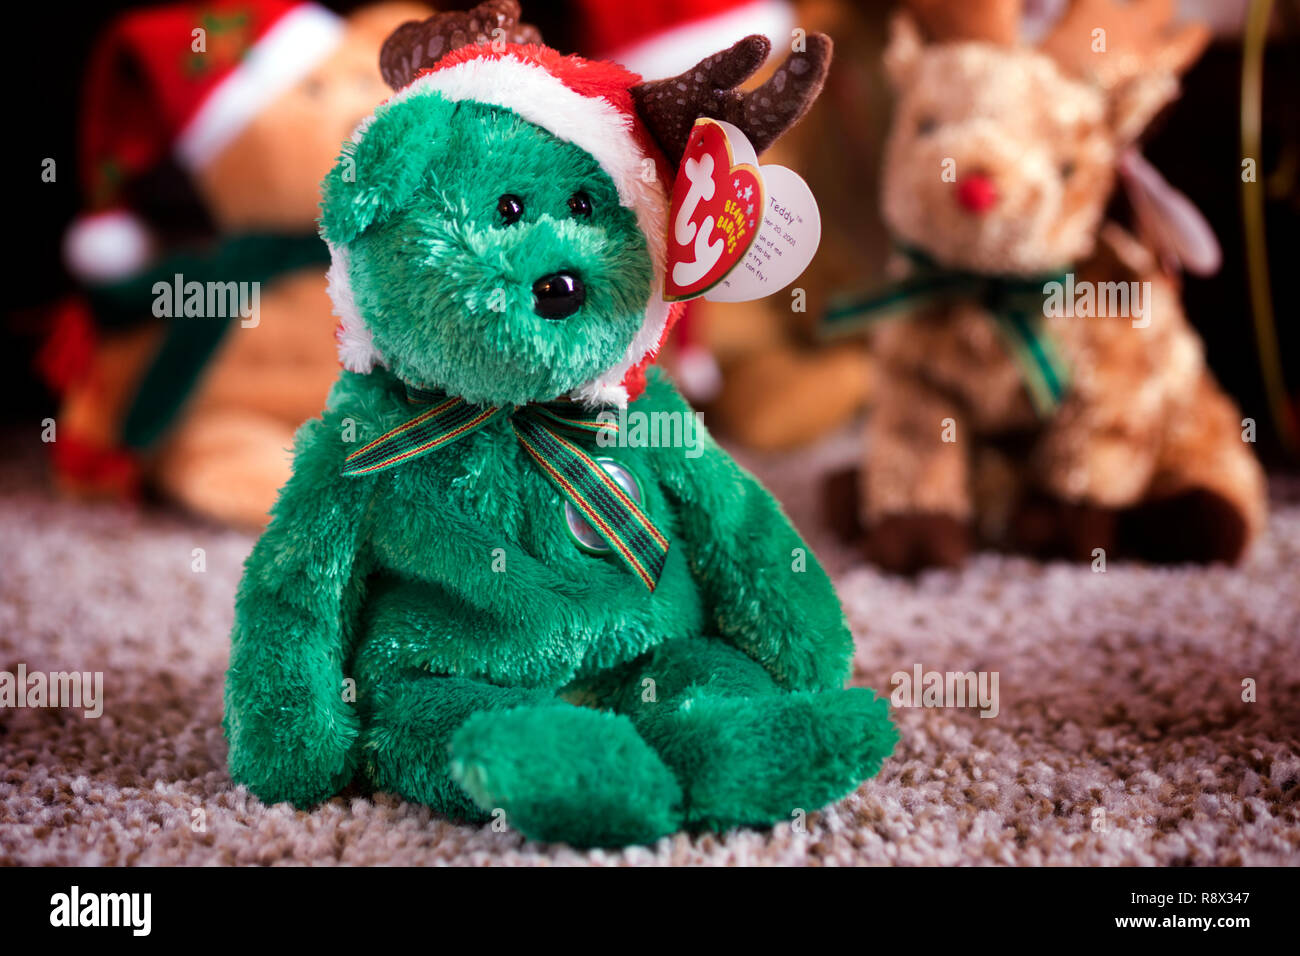 2002 Holiday Teddy. One of Ty Company s annual holiday Beanie Babies in a  family Christmas 874d1c89dda8